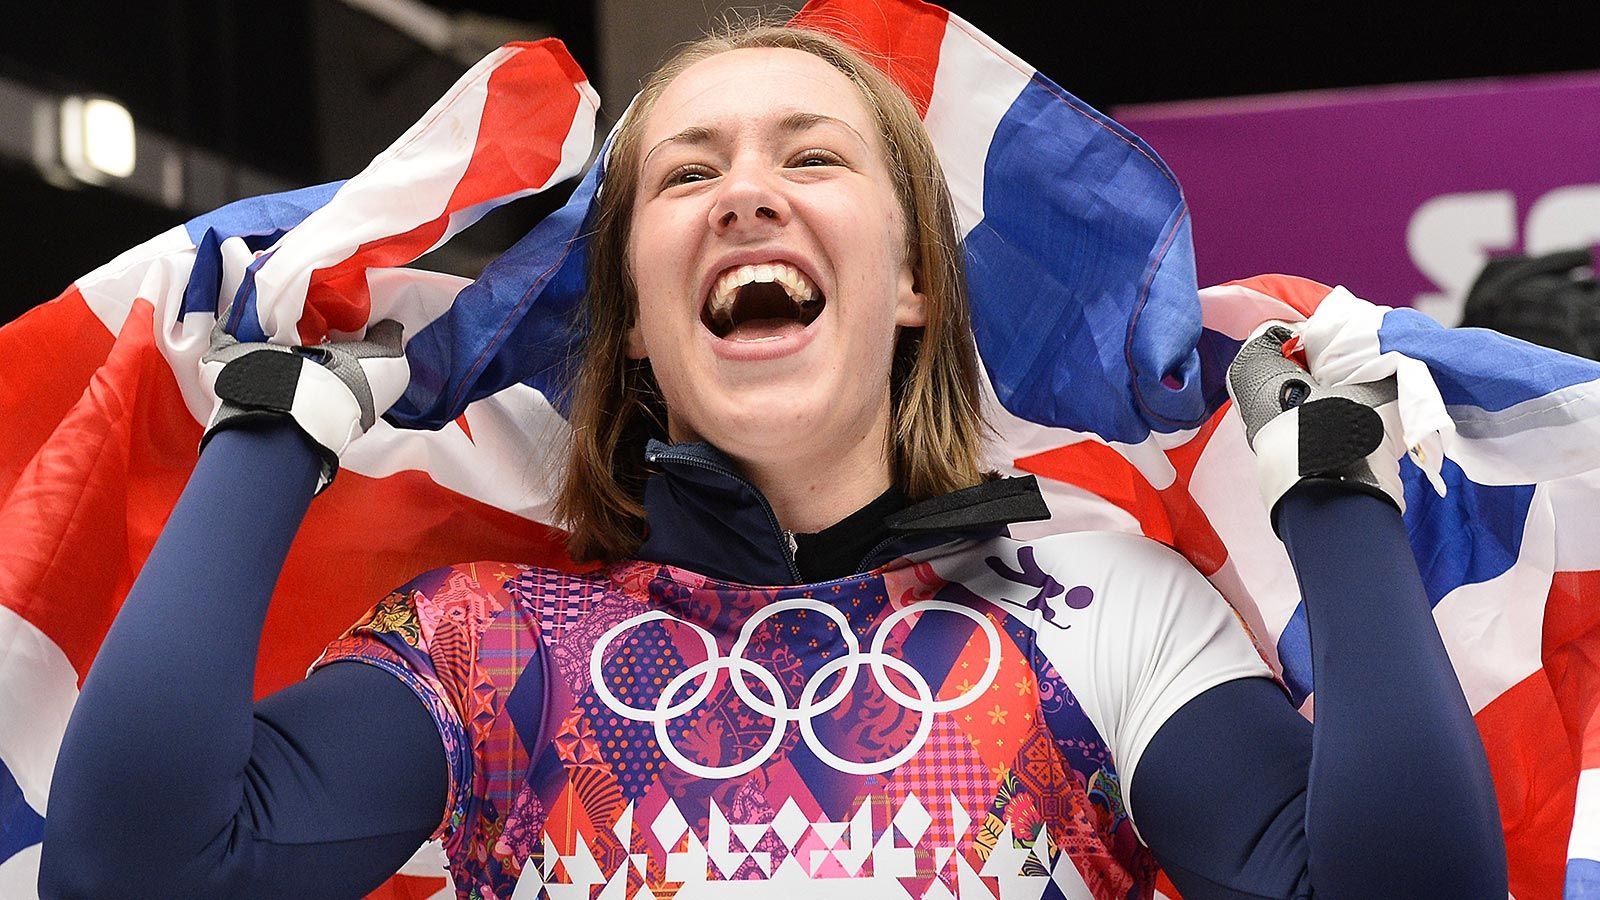 UK's Yarnold wins women's skeleton, USA's PikusPace gets